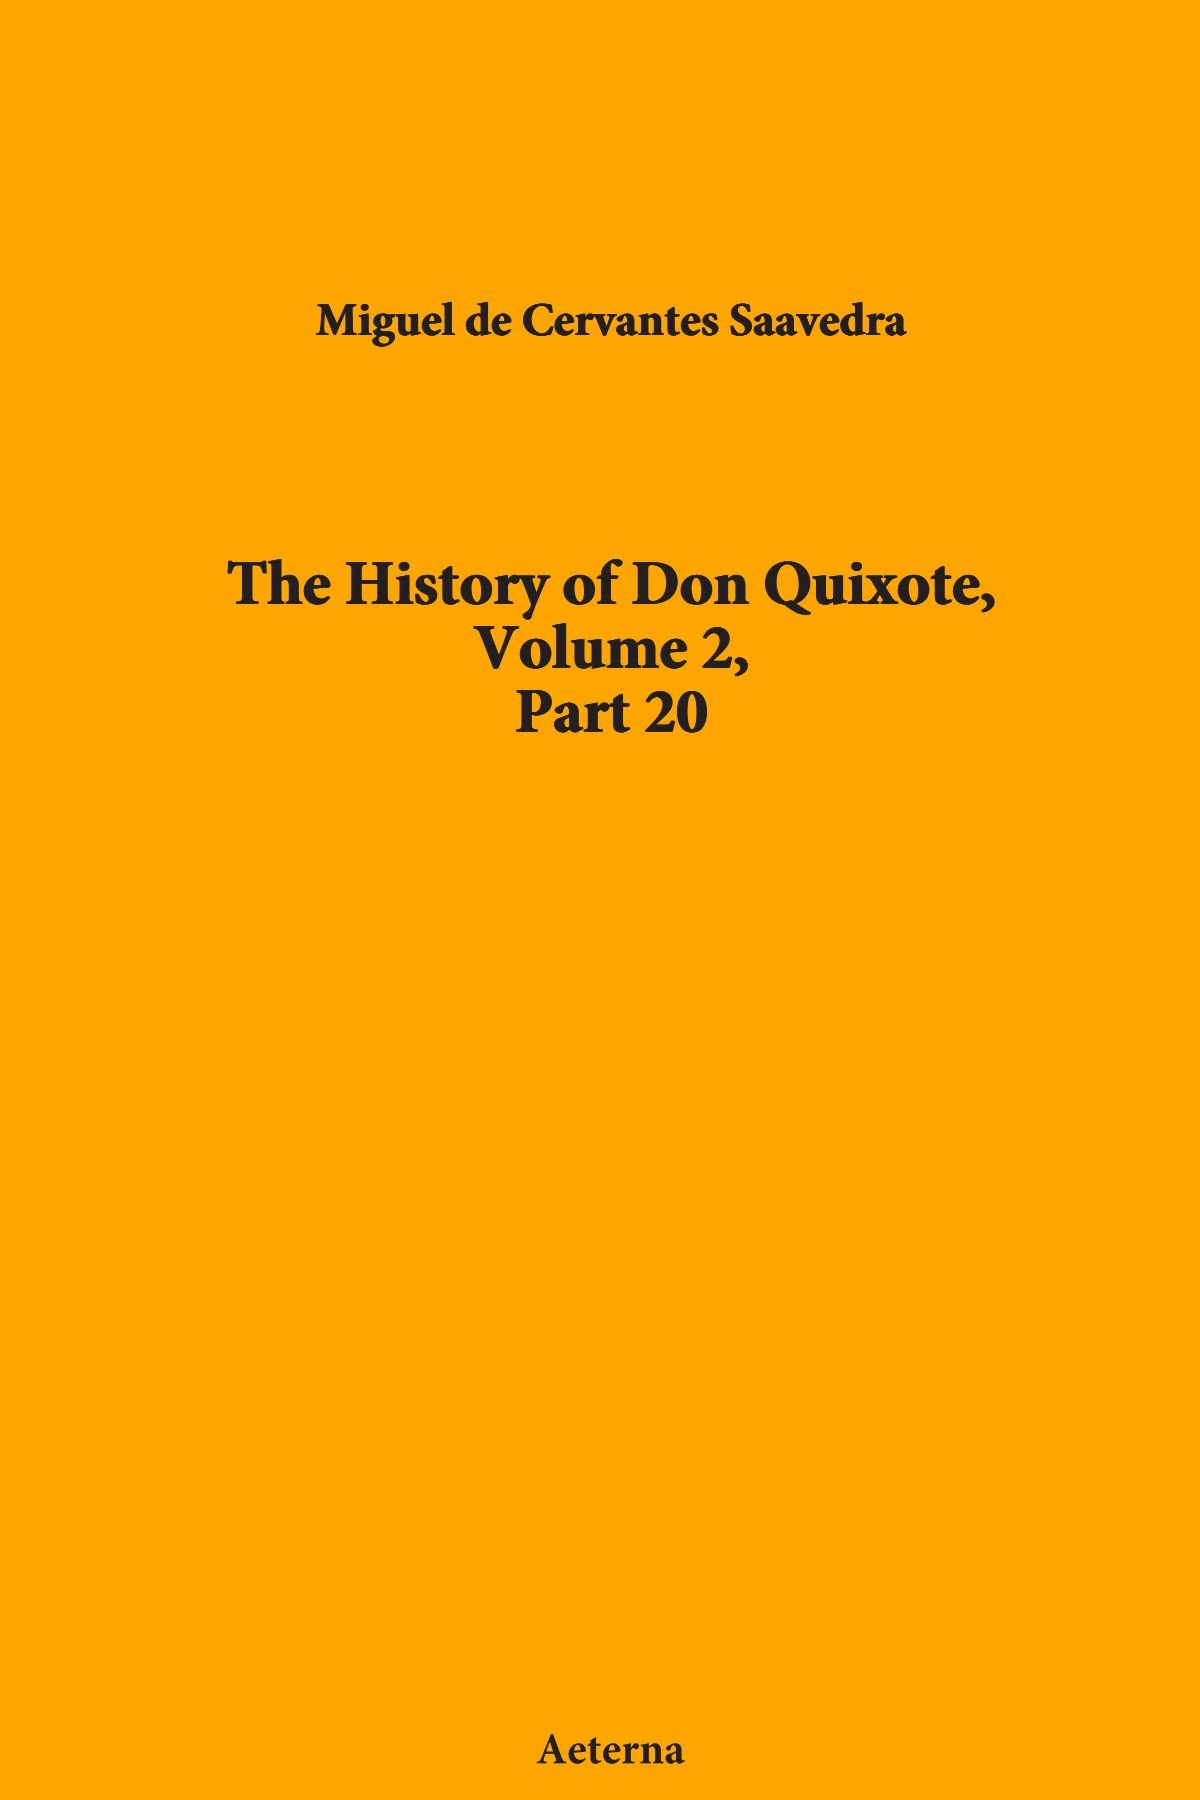 Read Online The History of Don Quixote, Volume 2, Part 20 PDF